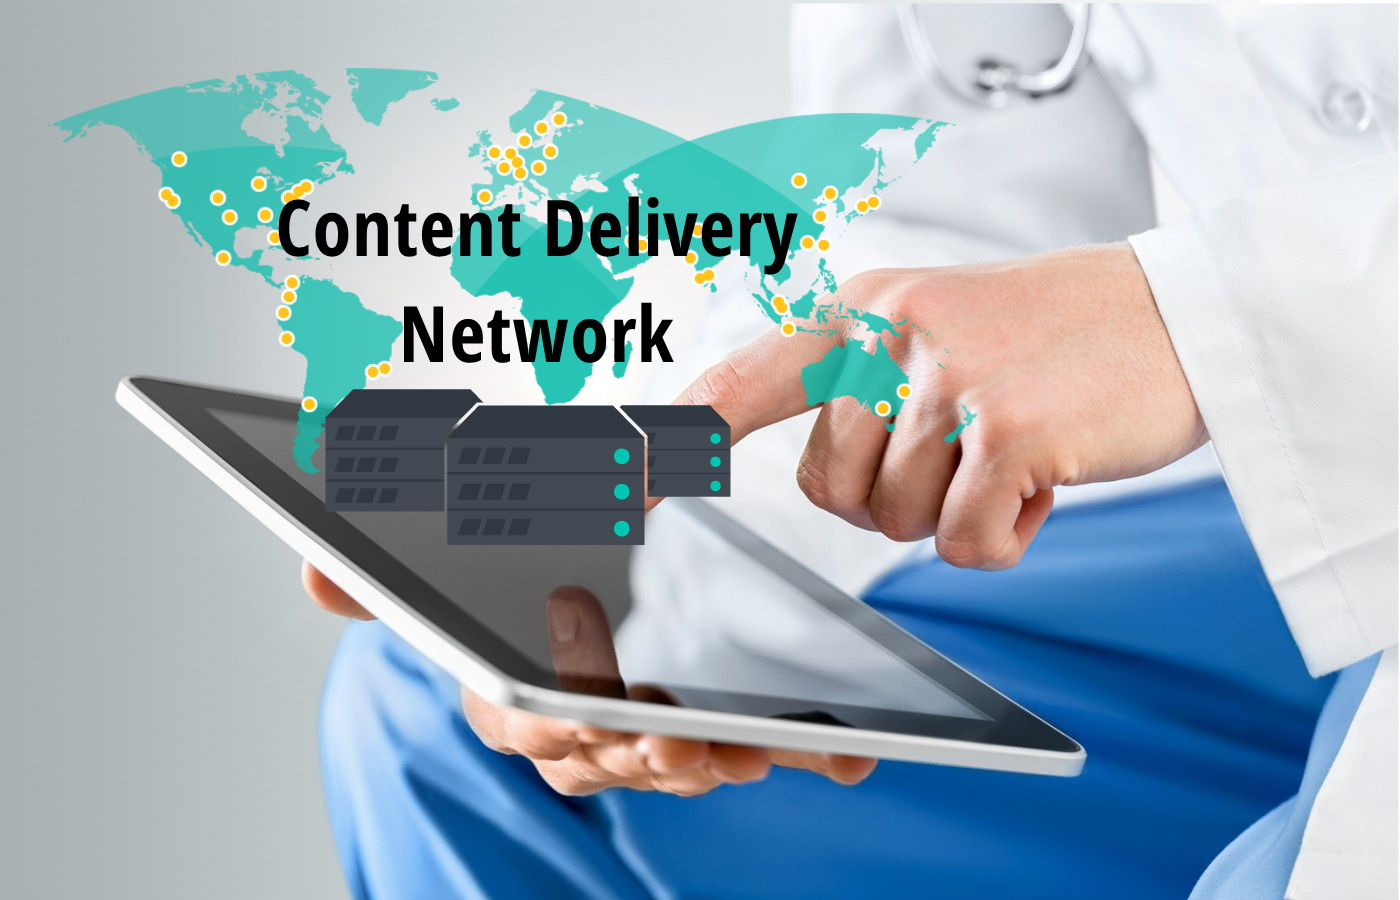 How CDN Works? How to Find the Cheapest CDN Provider?